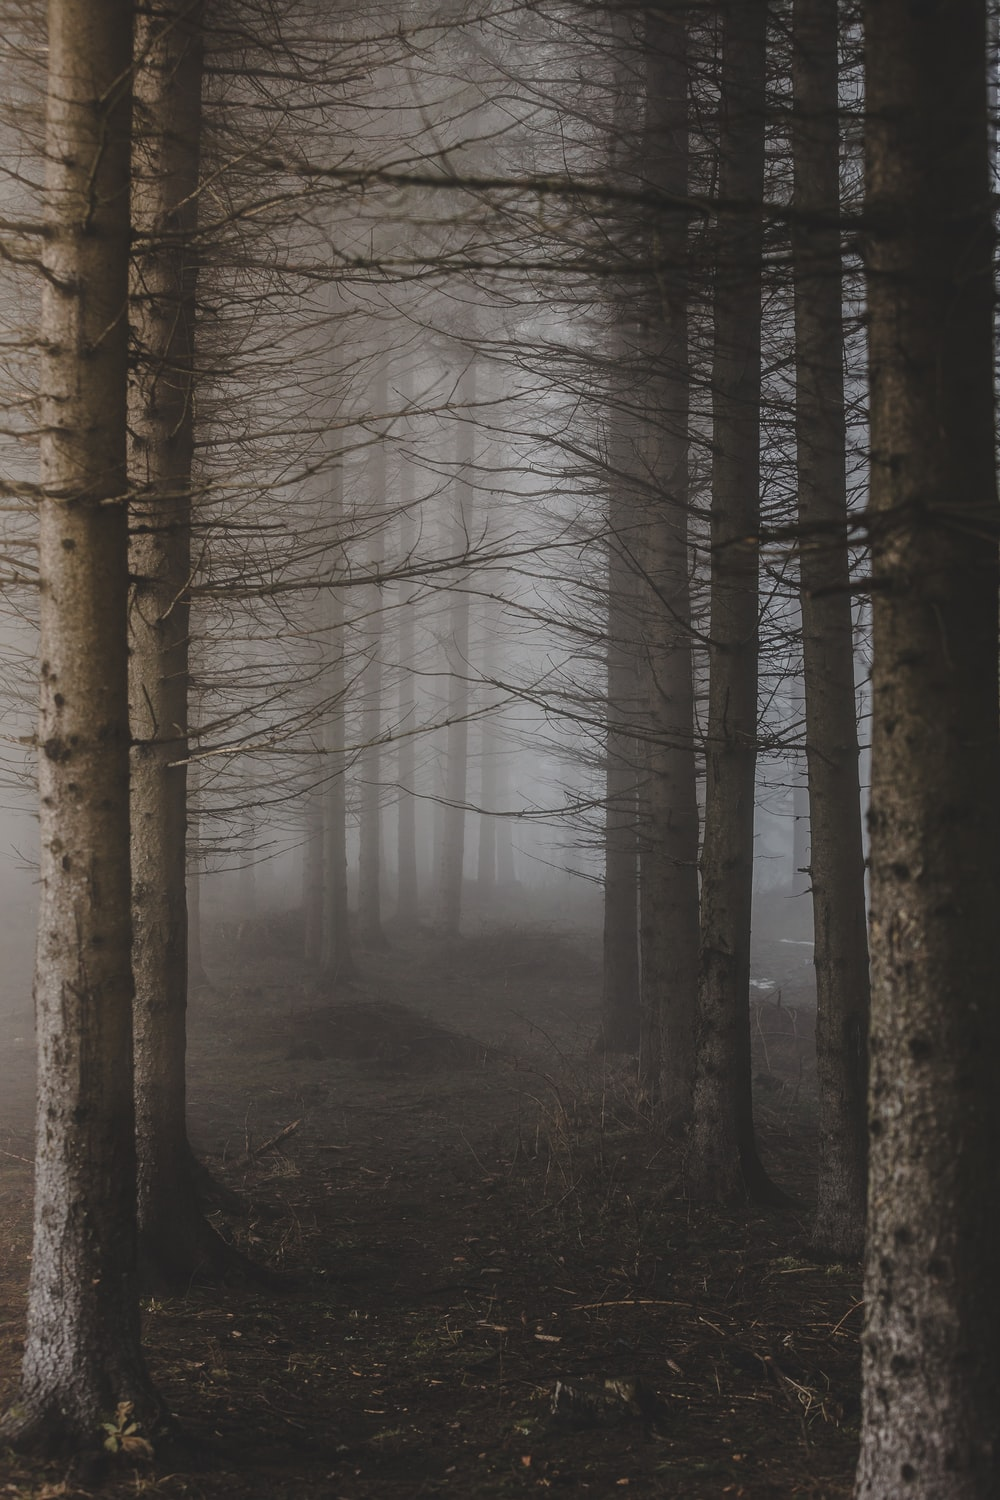 trees surrounded with fogs